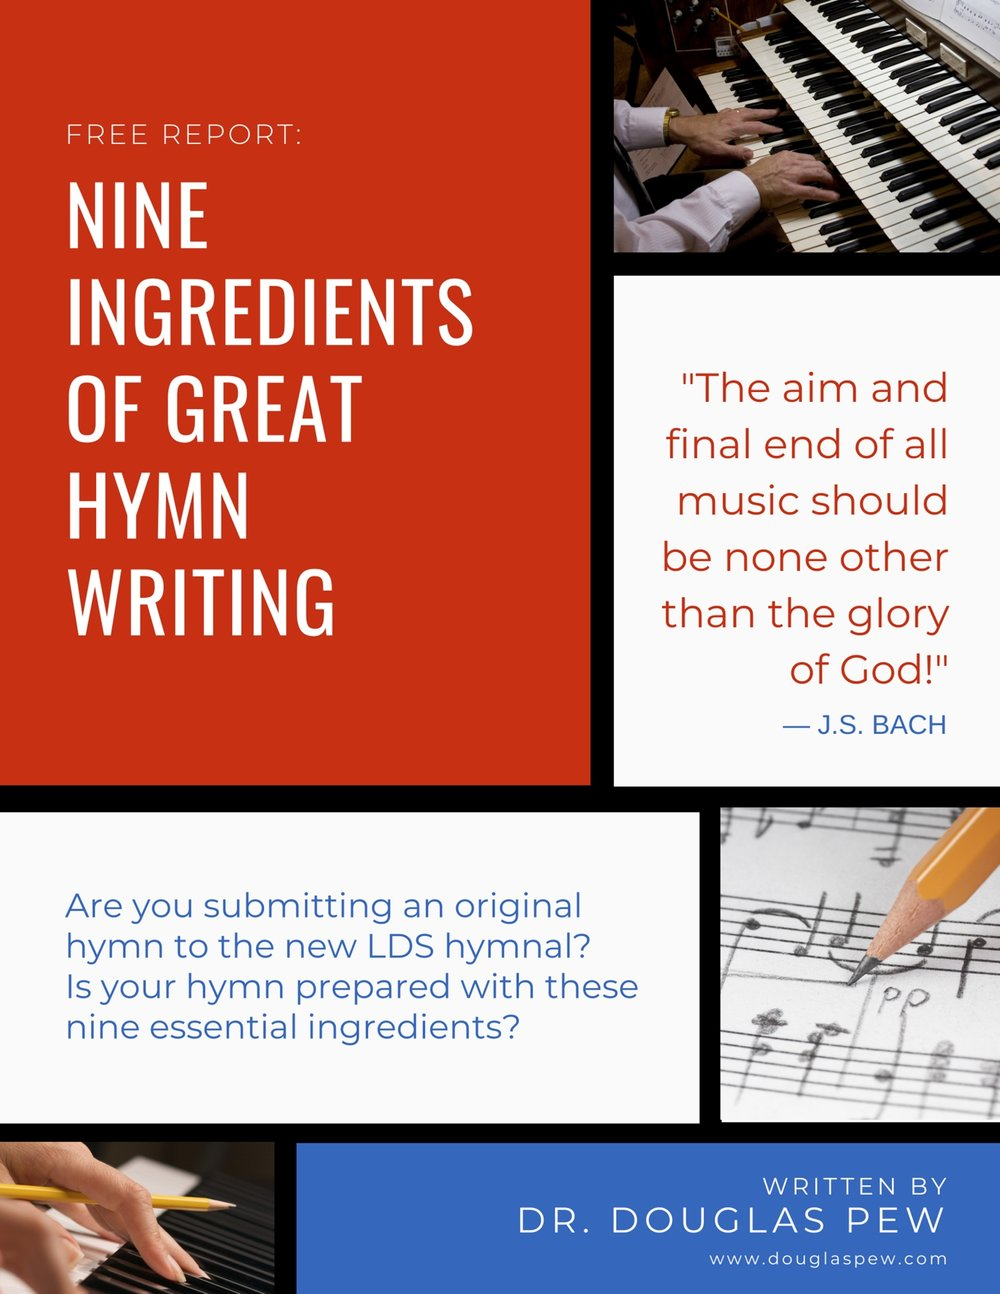 Free Report: 9 Ingredients of Great Hymn Writing